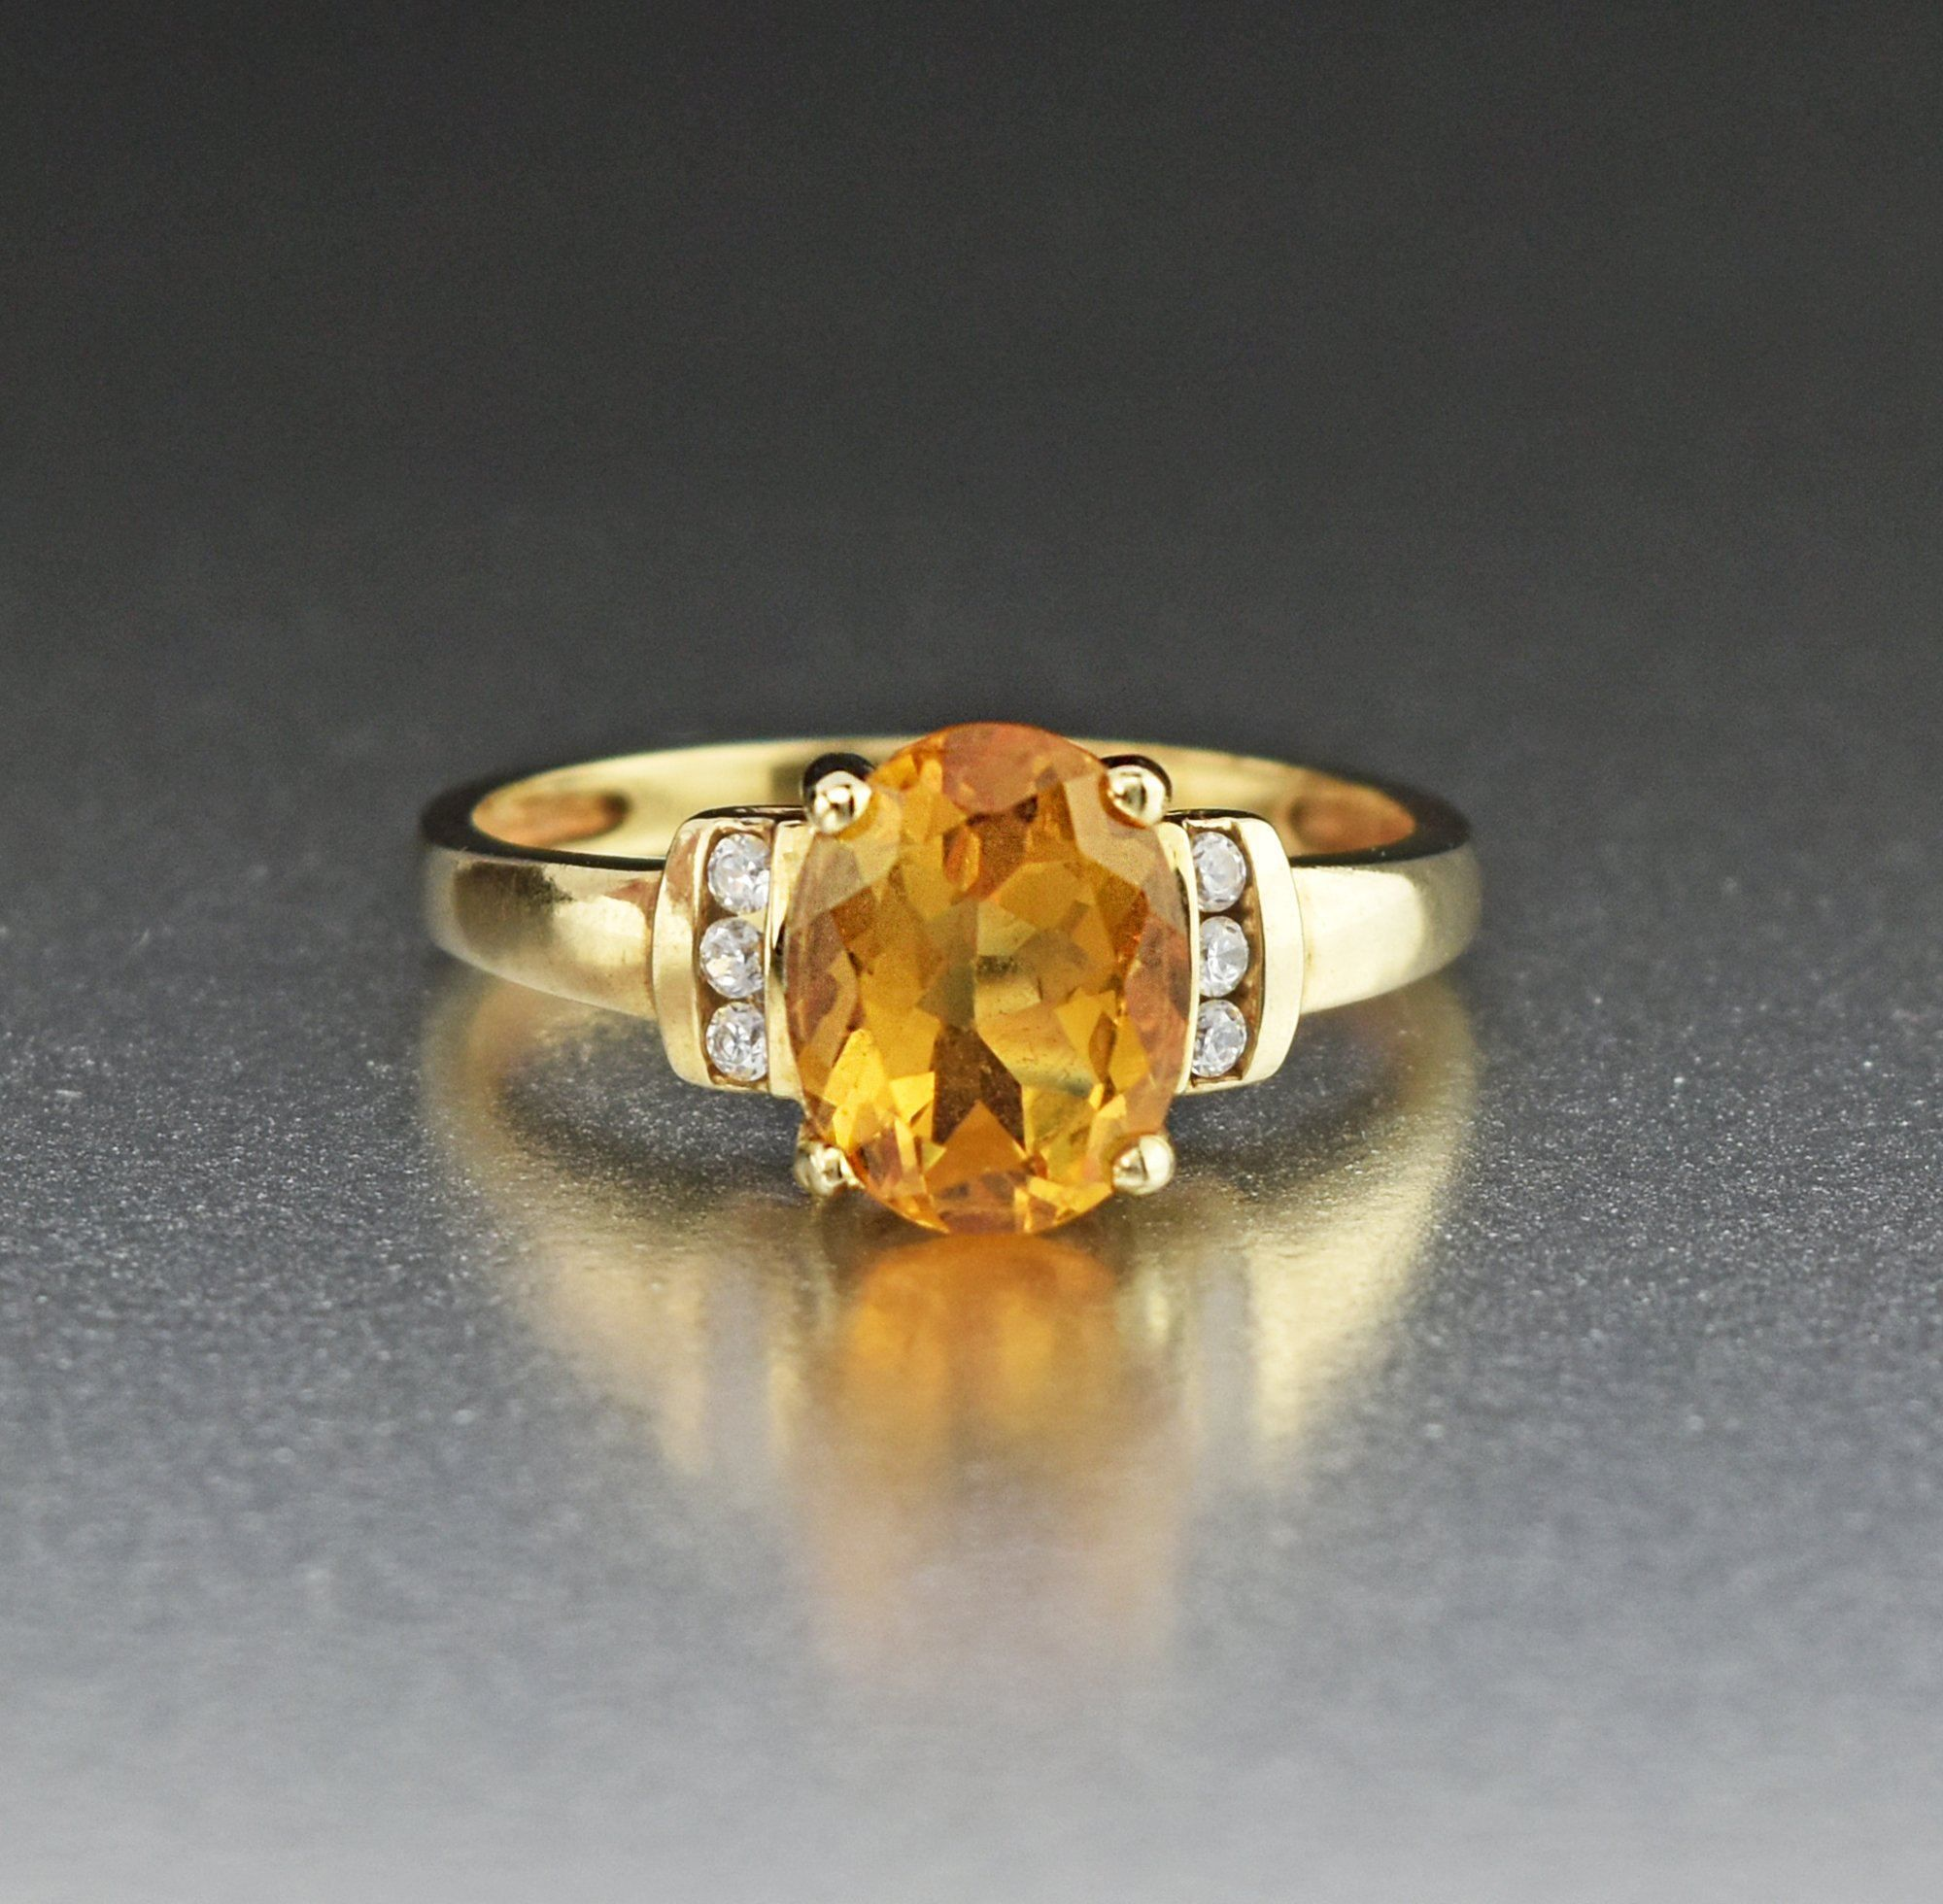 10k Gold Citrine Solitaire Ring With Diamond Cz In 2020 Pink Tourmaline Ring Synthetic Diamond Citrine